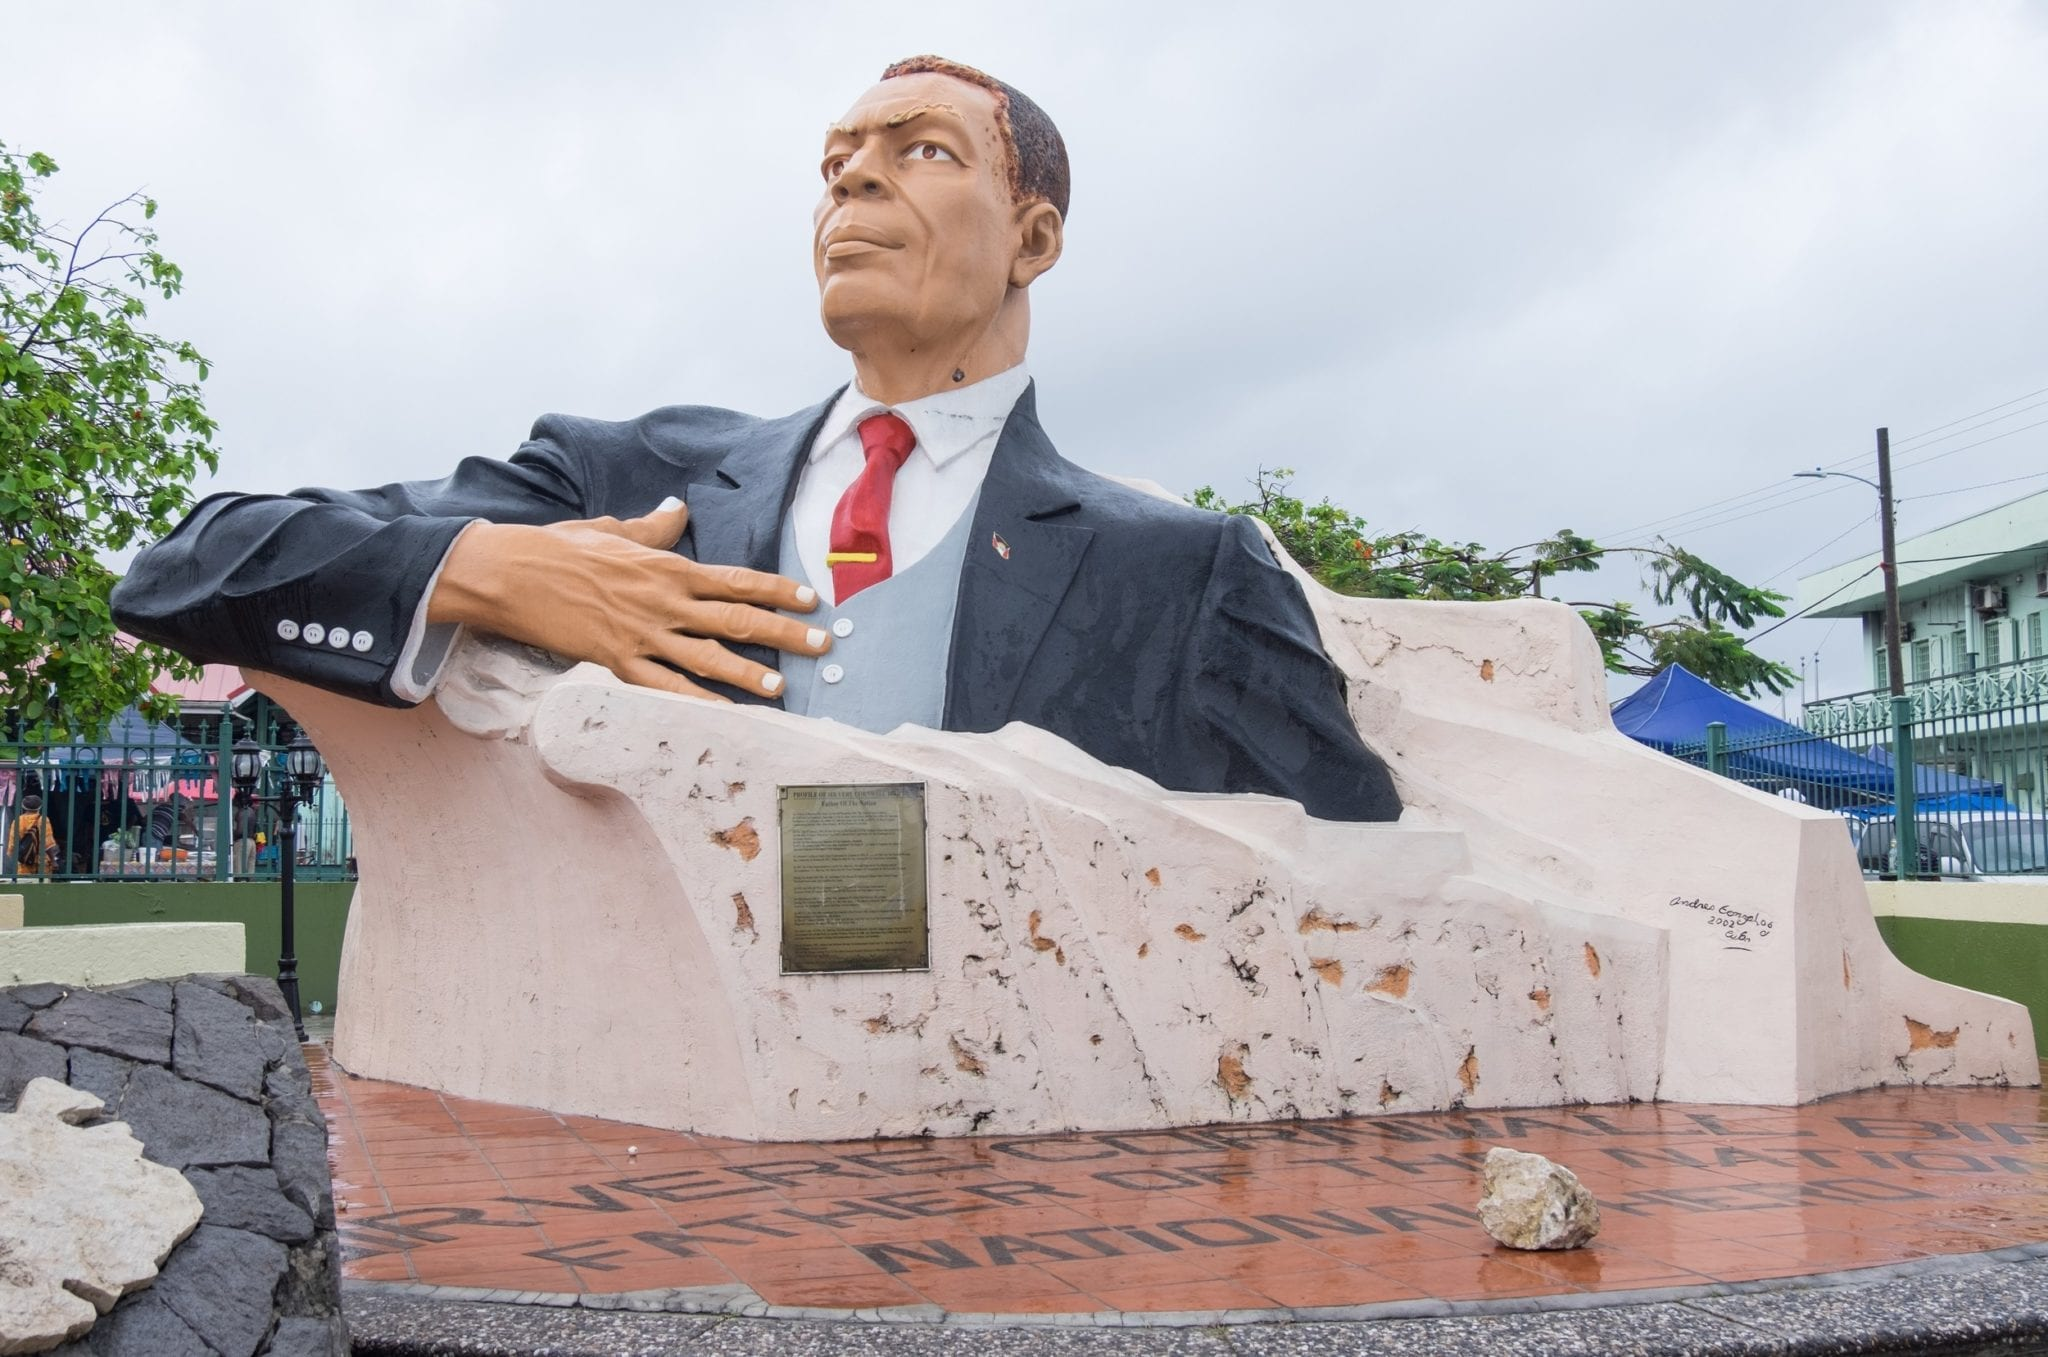 Giant colored of the first president of Antigua, from the chest up in a suit coming out of a piece of rock in the center of town